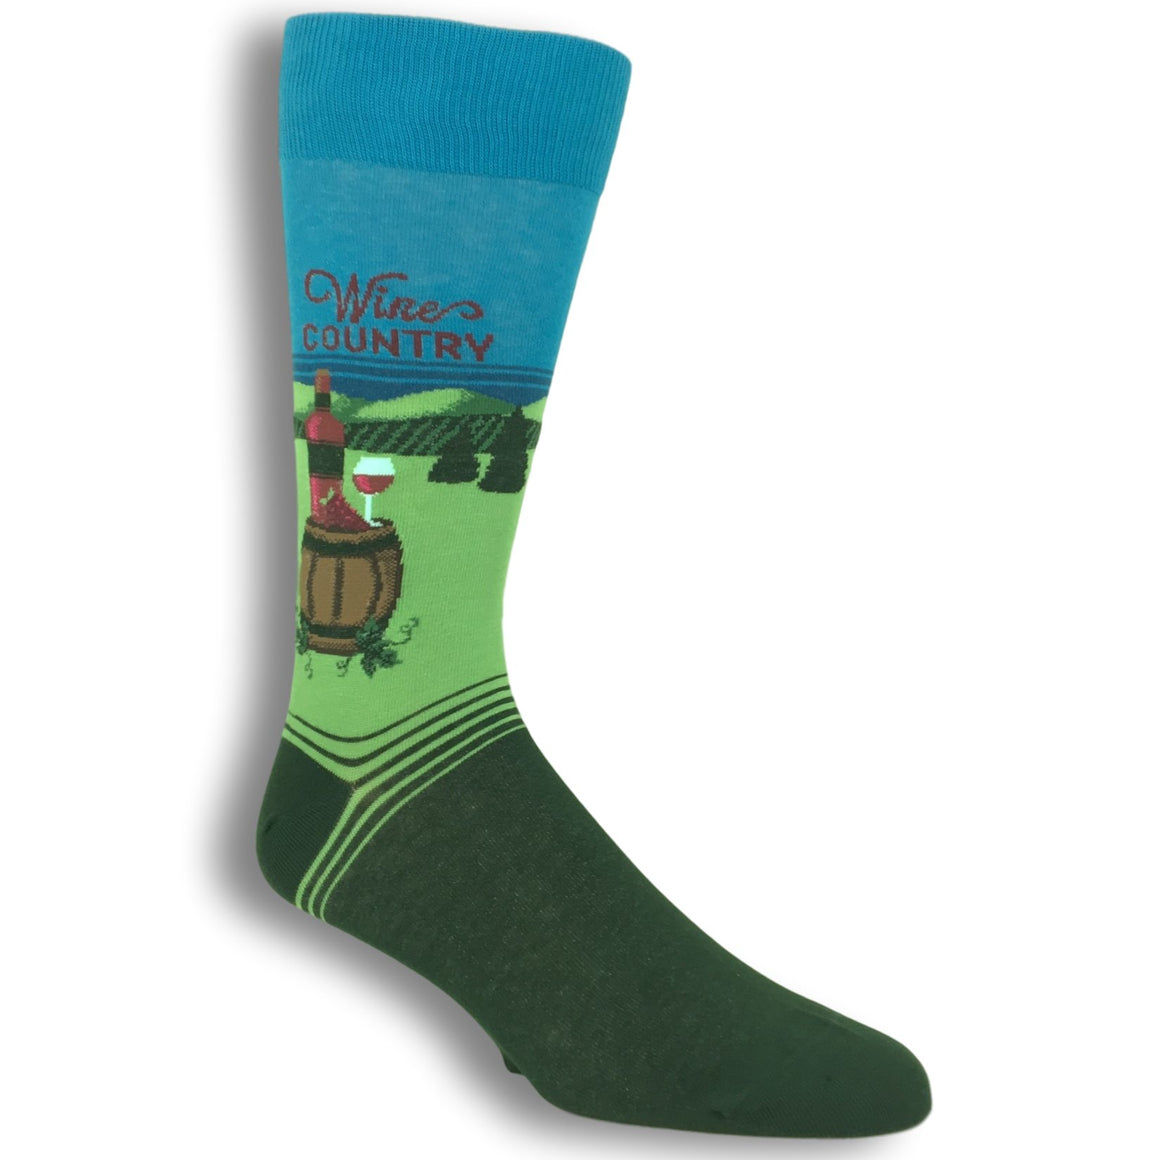 Wine Country Socks by Hot Sox - The Sock Spot